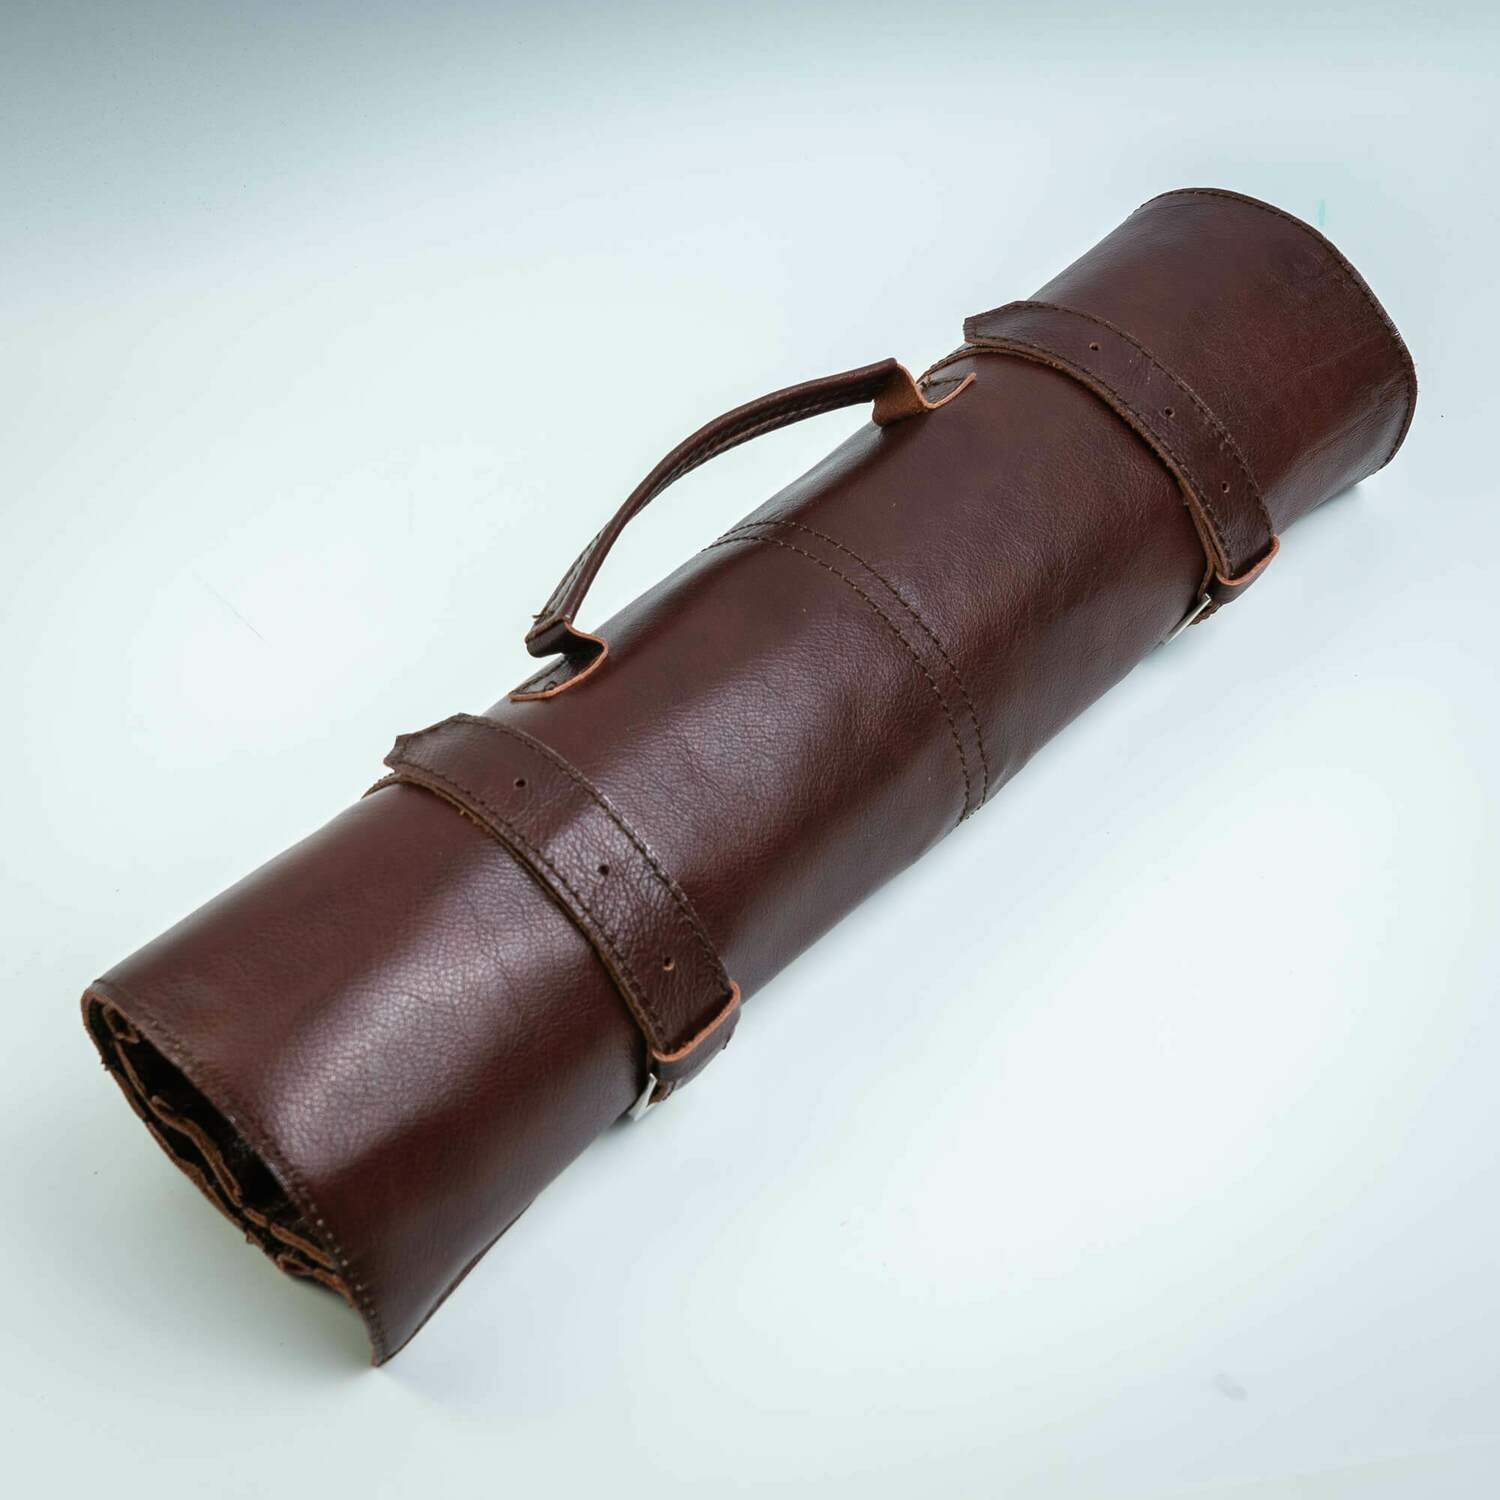 ROLL-LR70 - LEATHER BAG SCREW FOR KNIVES